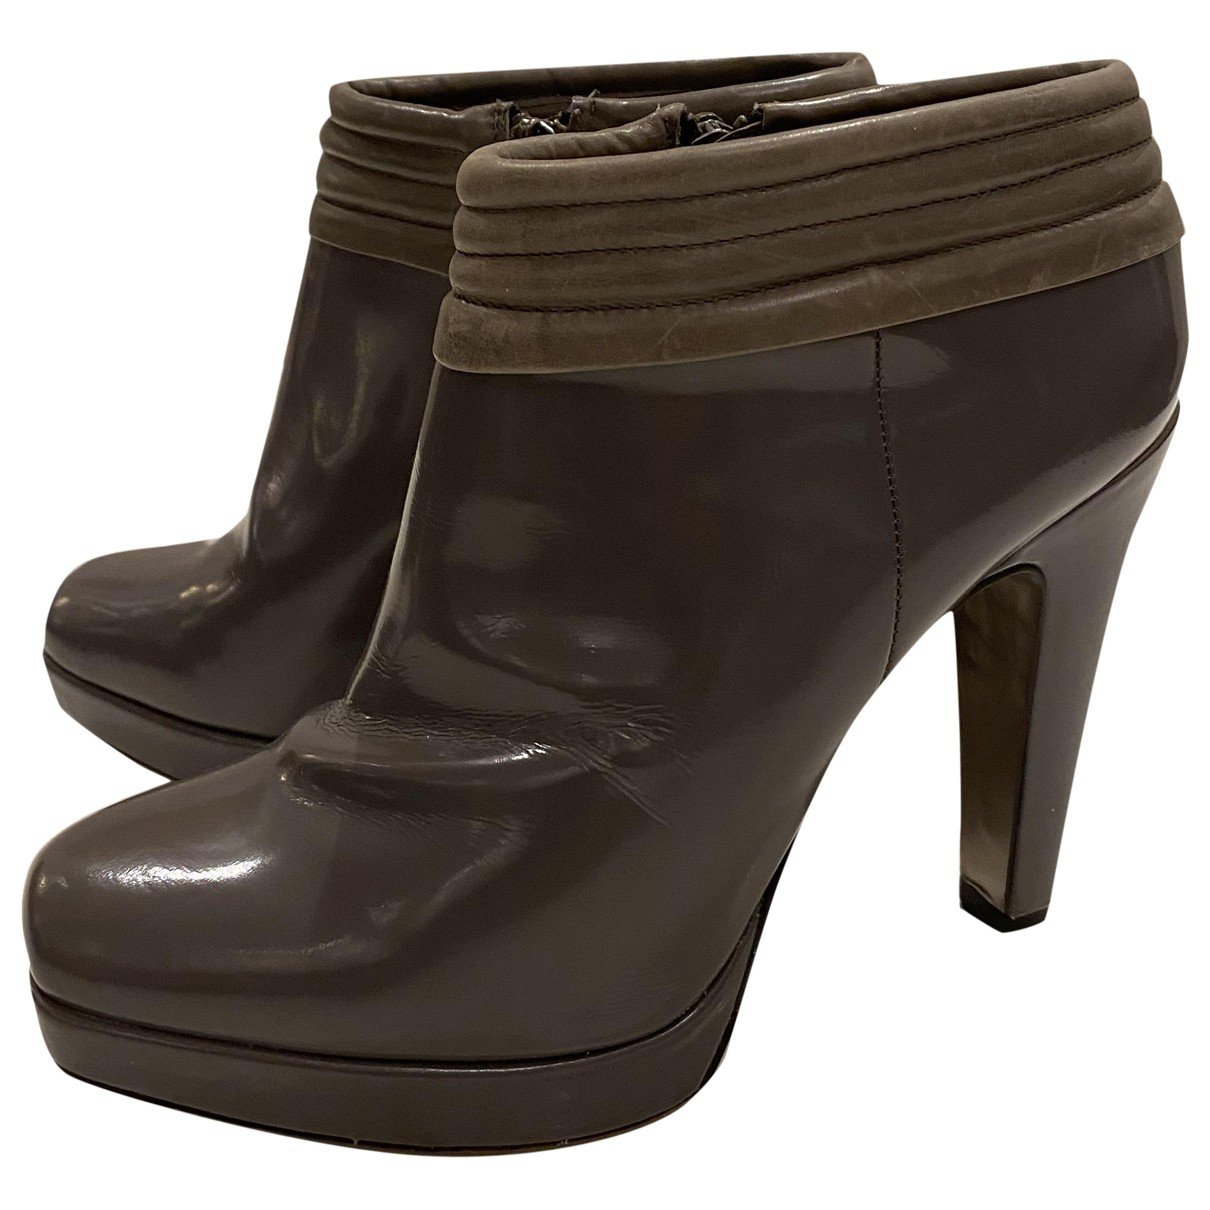 Boss N Grey Patent leather Ankle boots for Women 39 EU